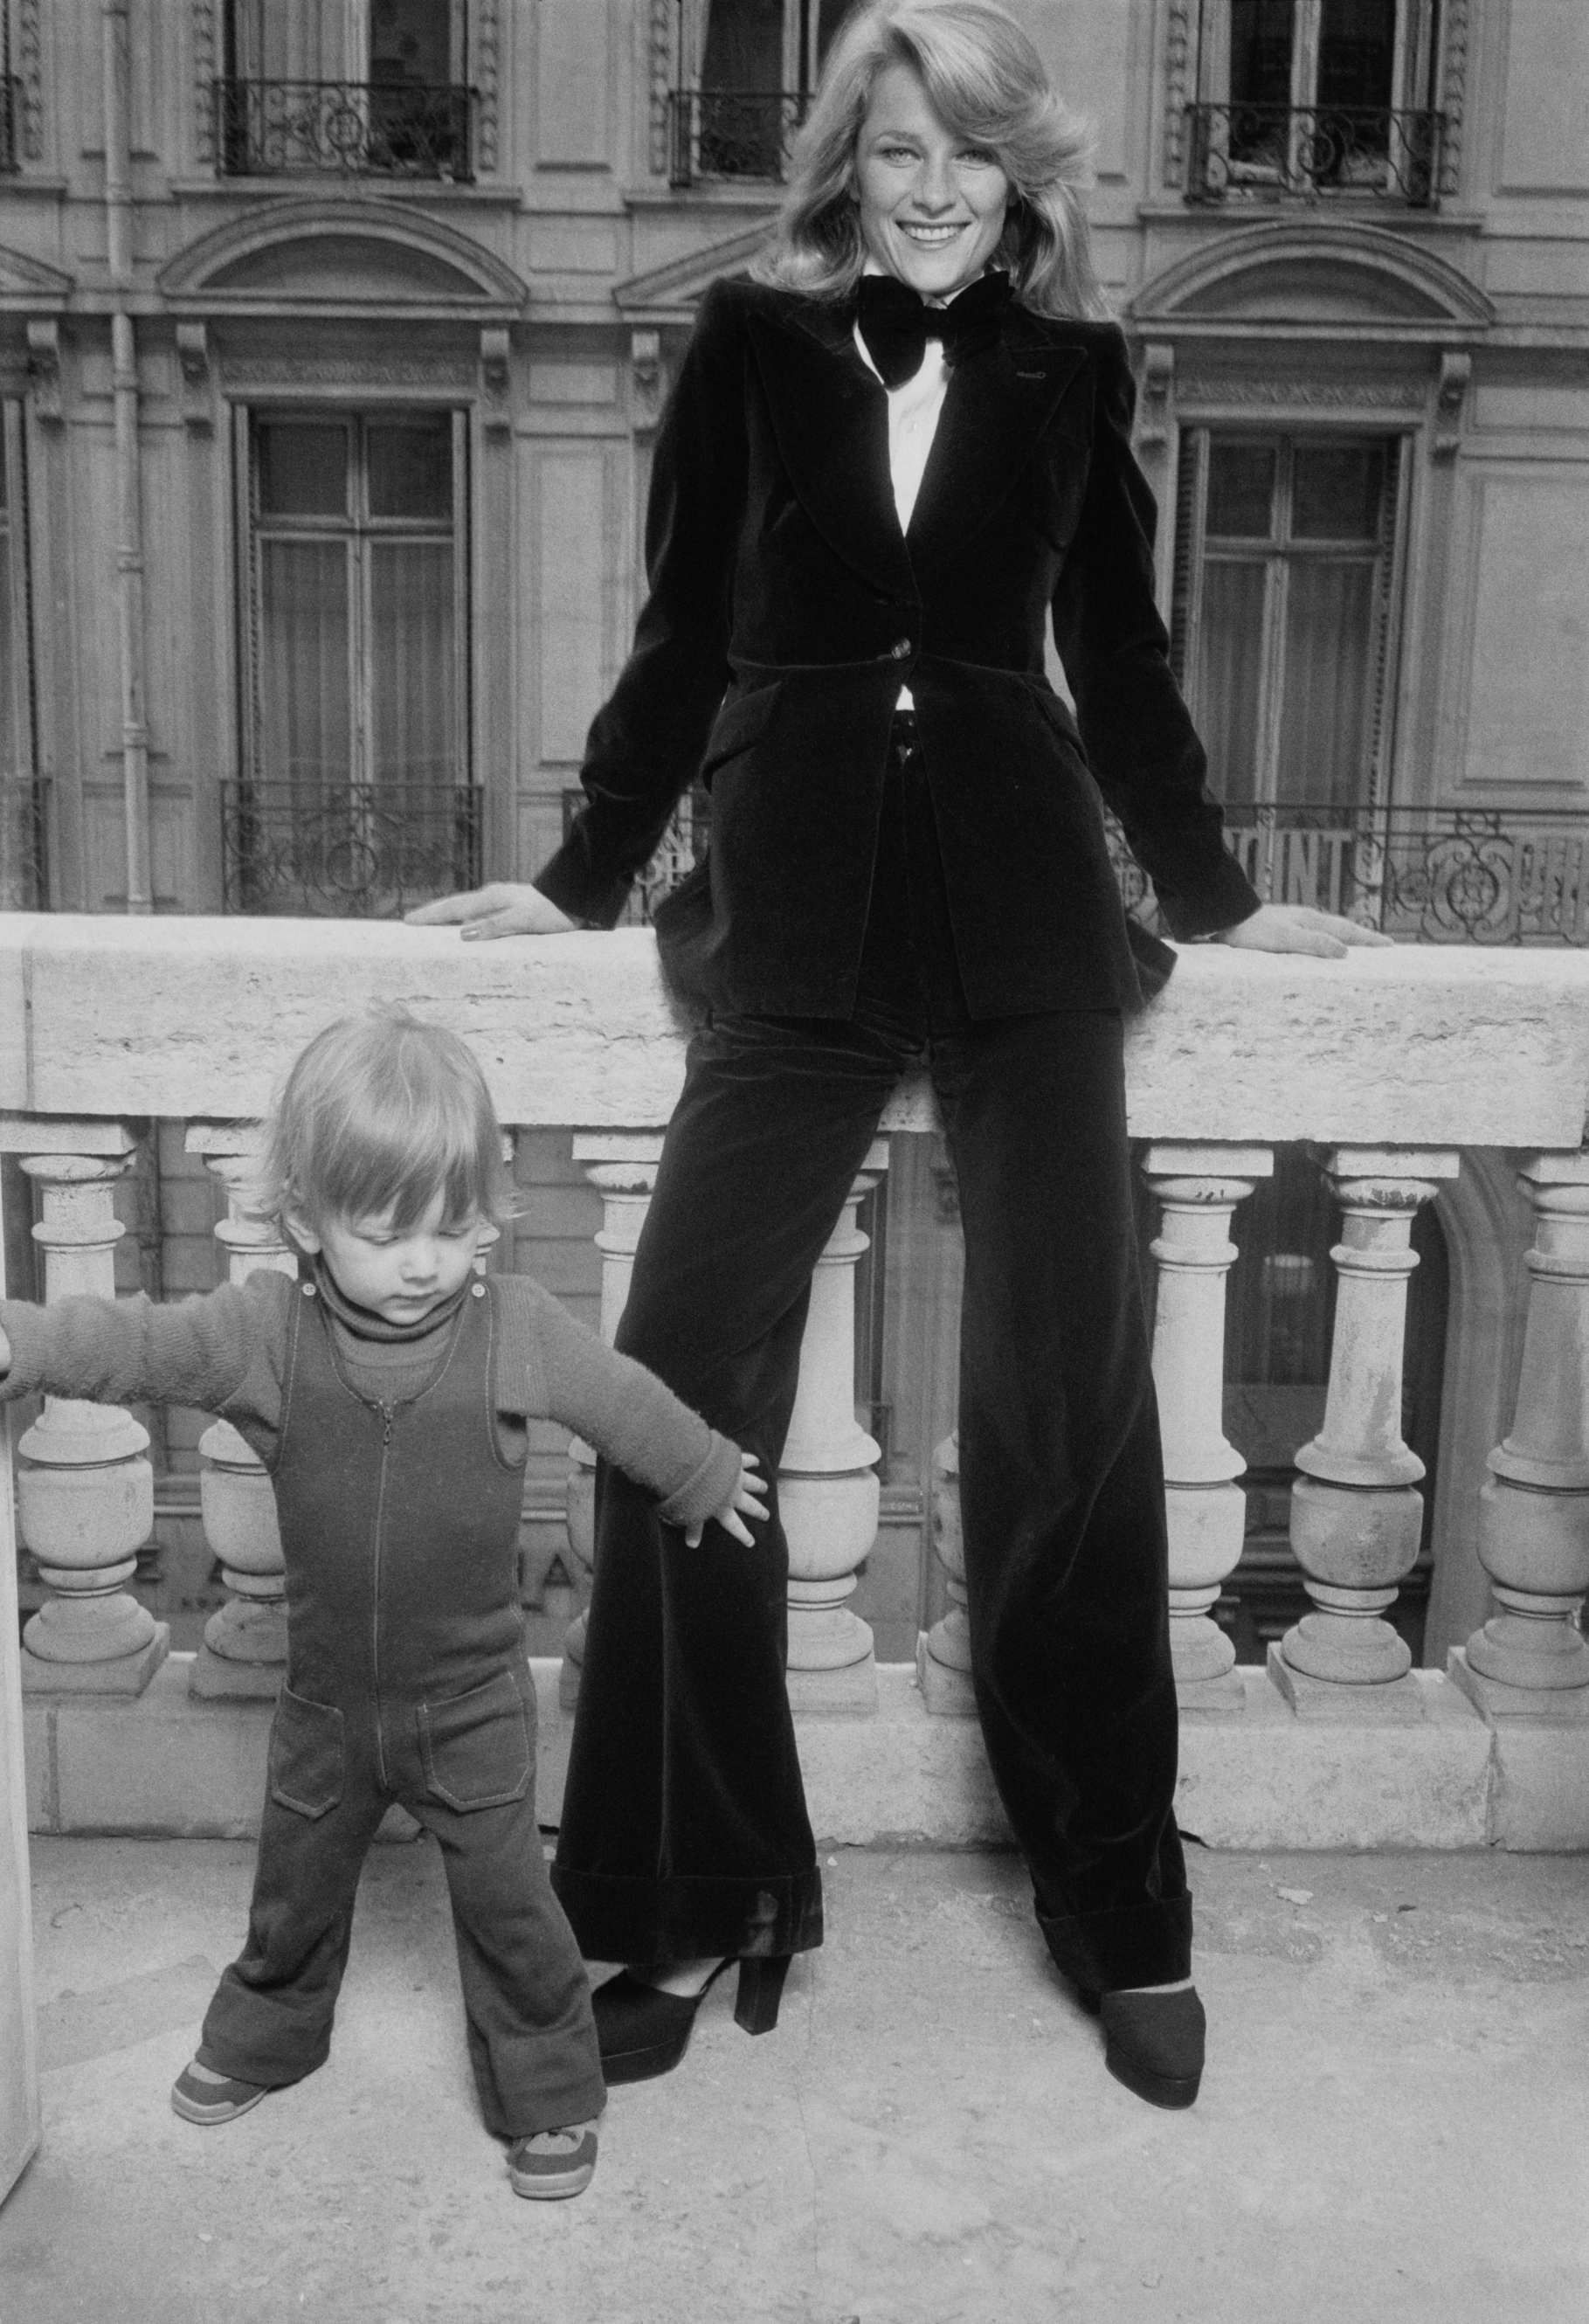 db49bfc8cd0 Thank You for Le Smoking: The 20 Chicest Women in Tuxedos | Heaven ...